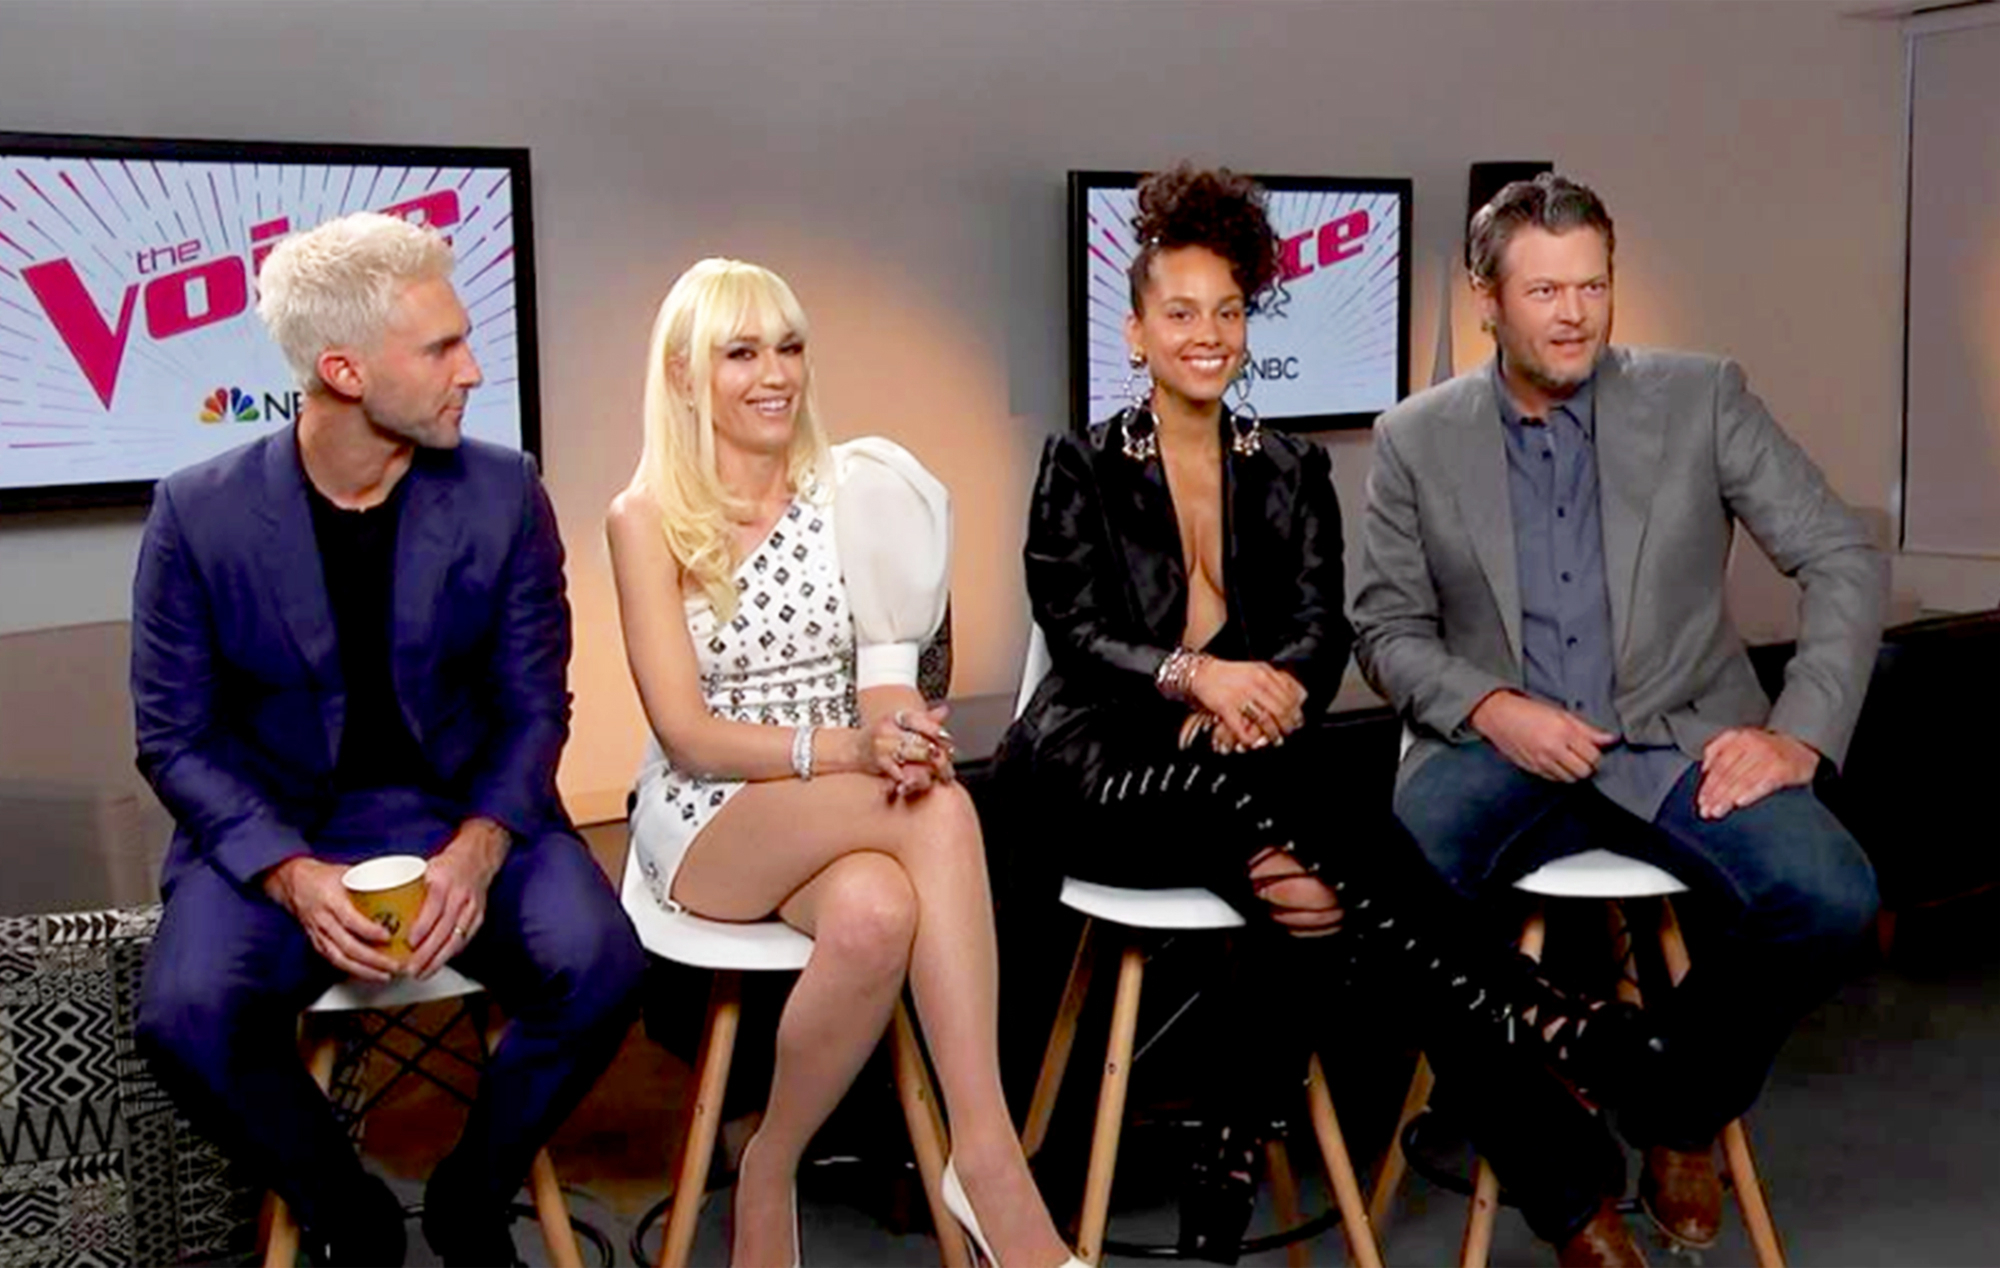 The Voice Adam Levine, Gwen Stefani, Alicia Keys and Blake Shelton.